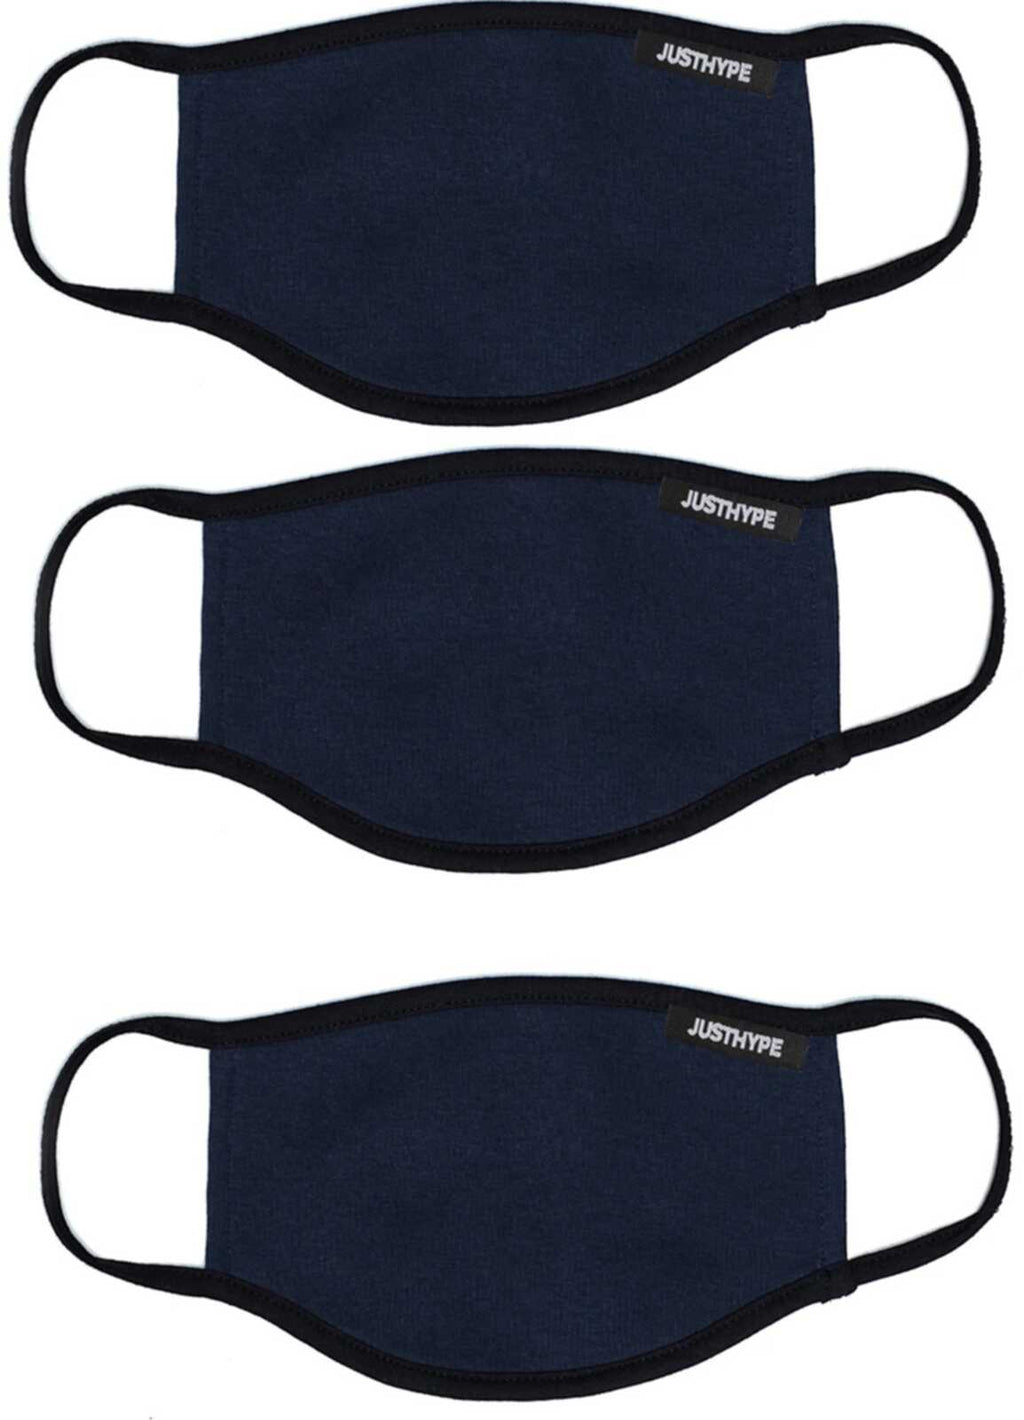 Hype Face Mask 3 Pack Adult Navy